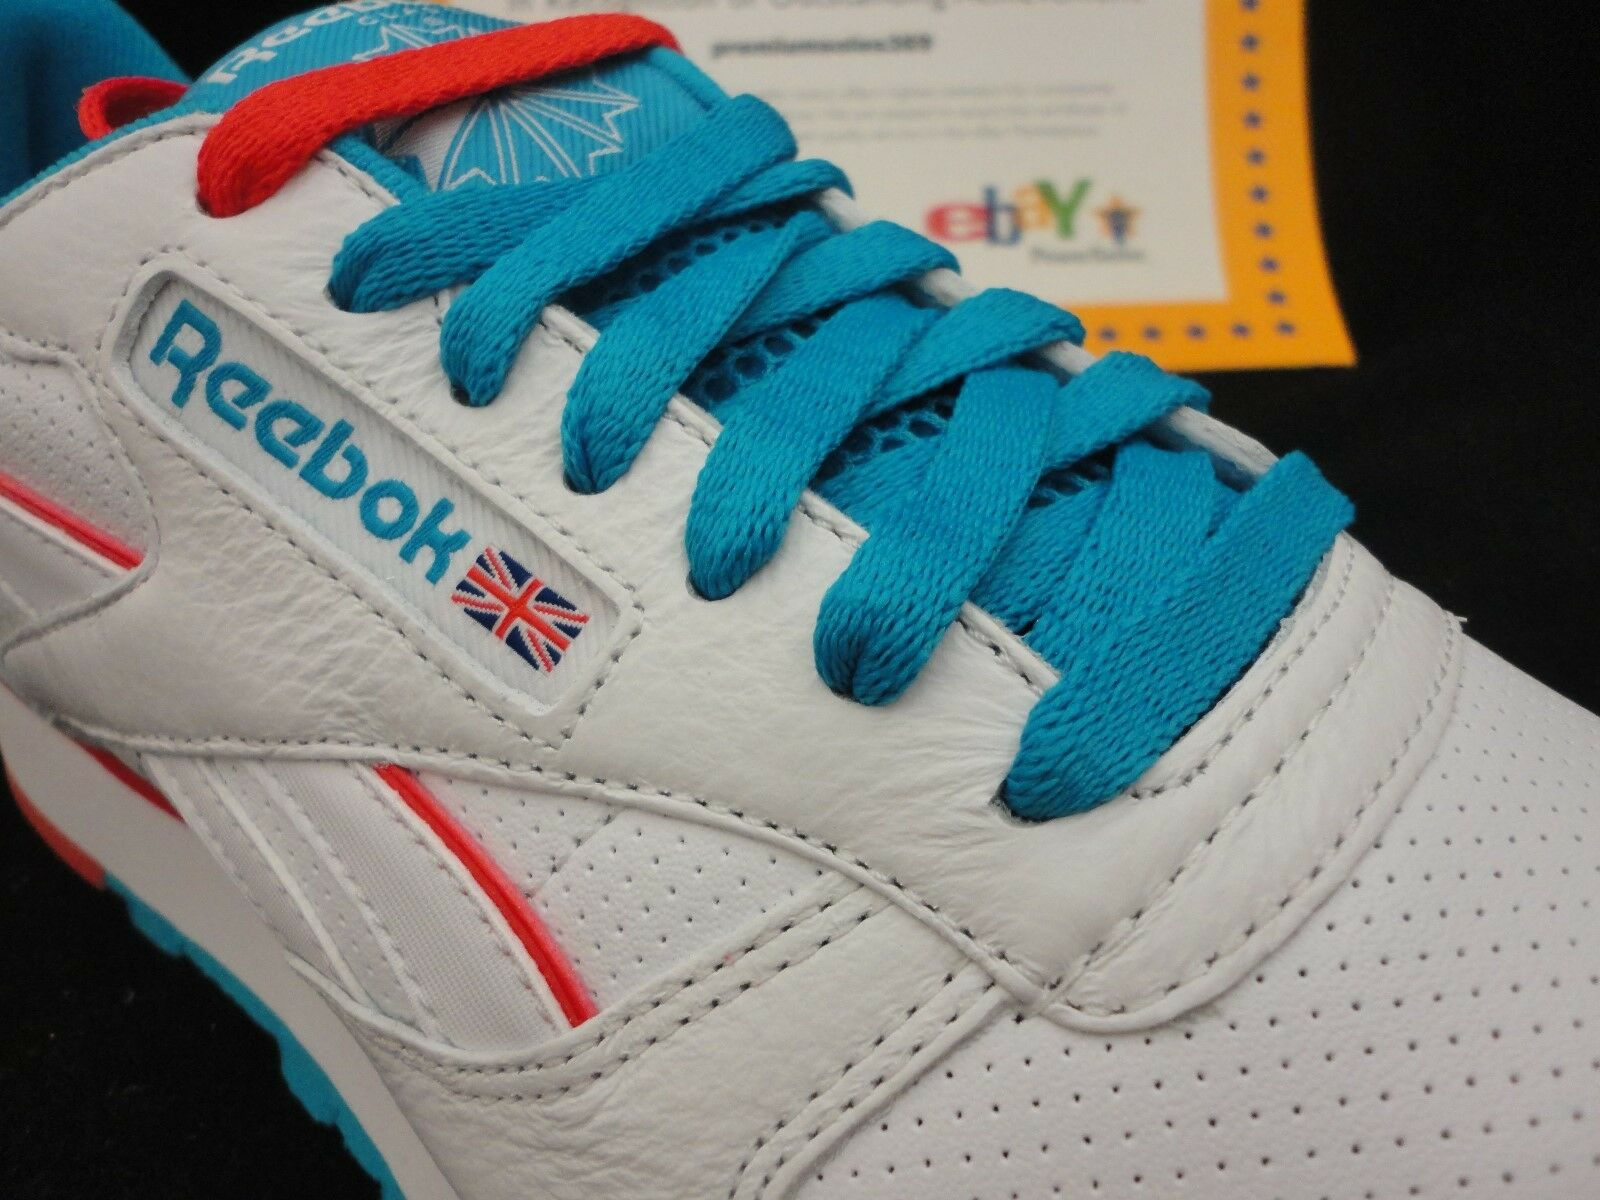 Reebok Classic Pelle Perf, White / Blue / Red, Size 12